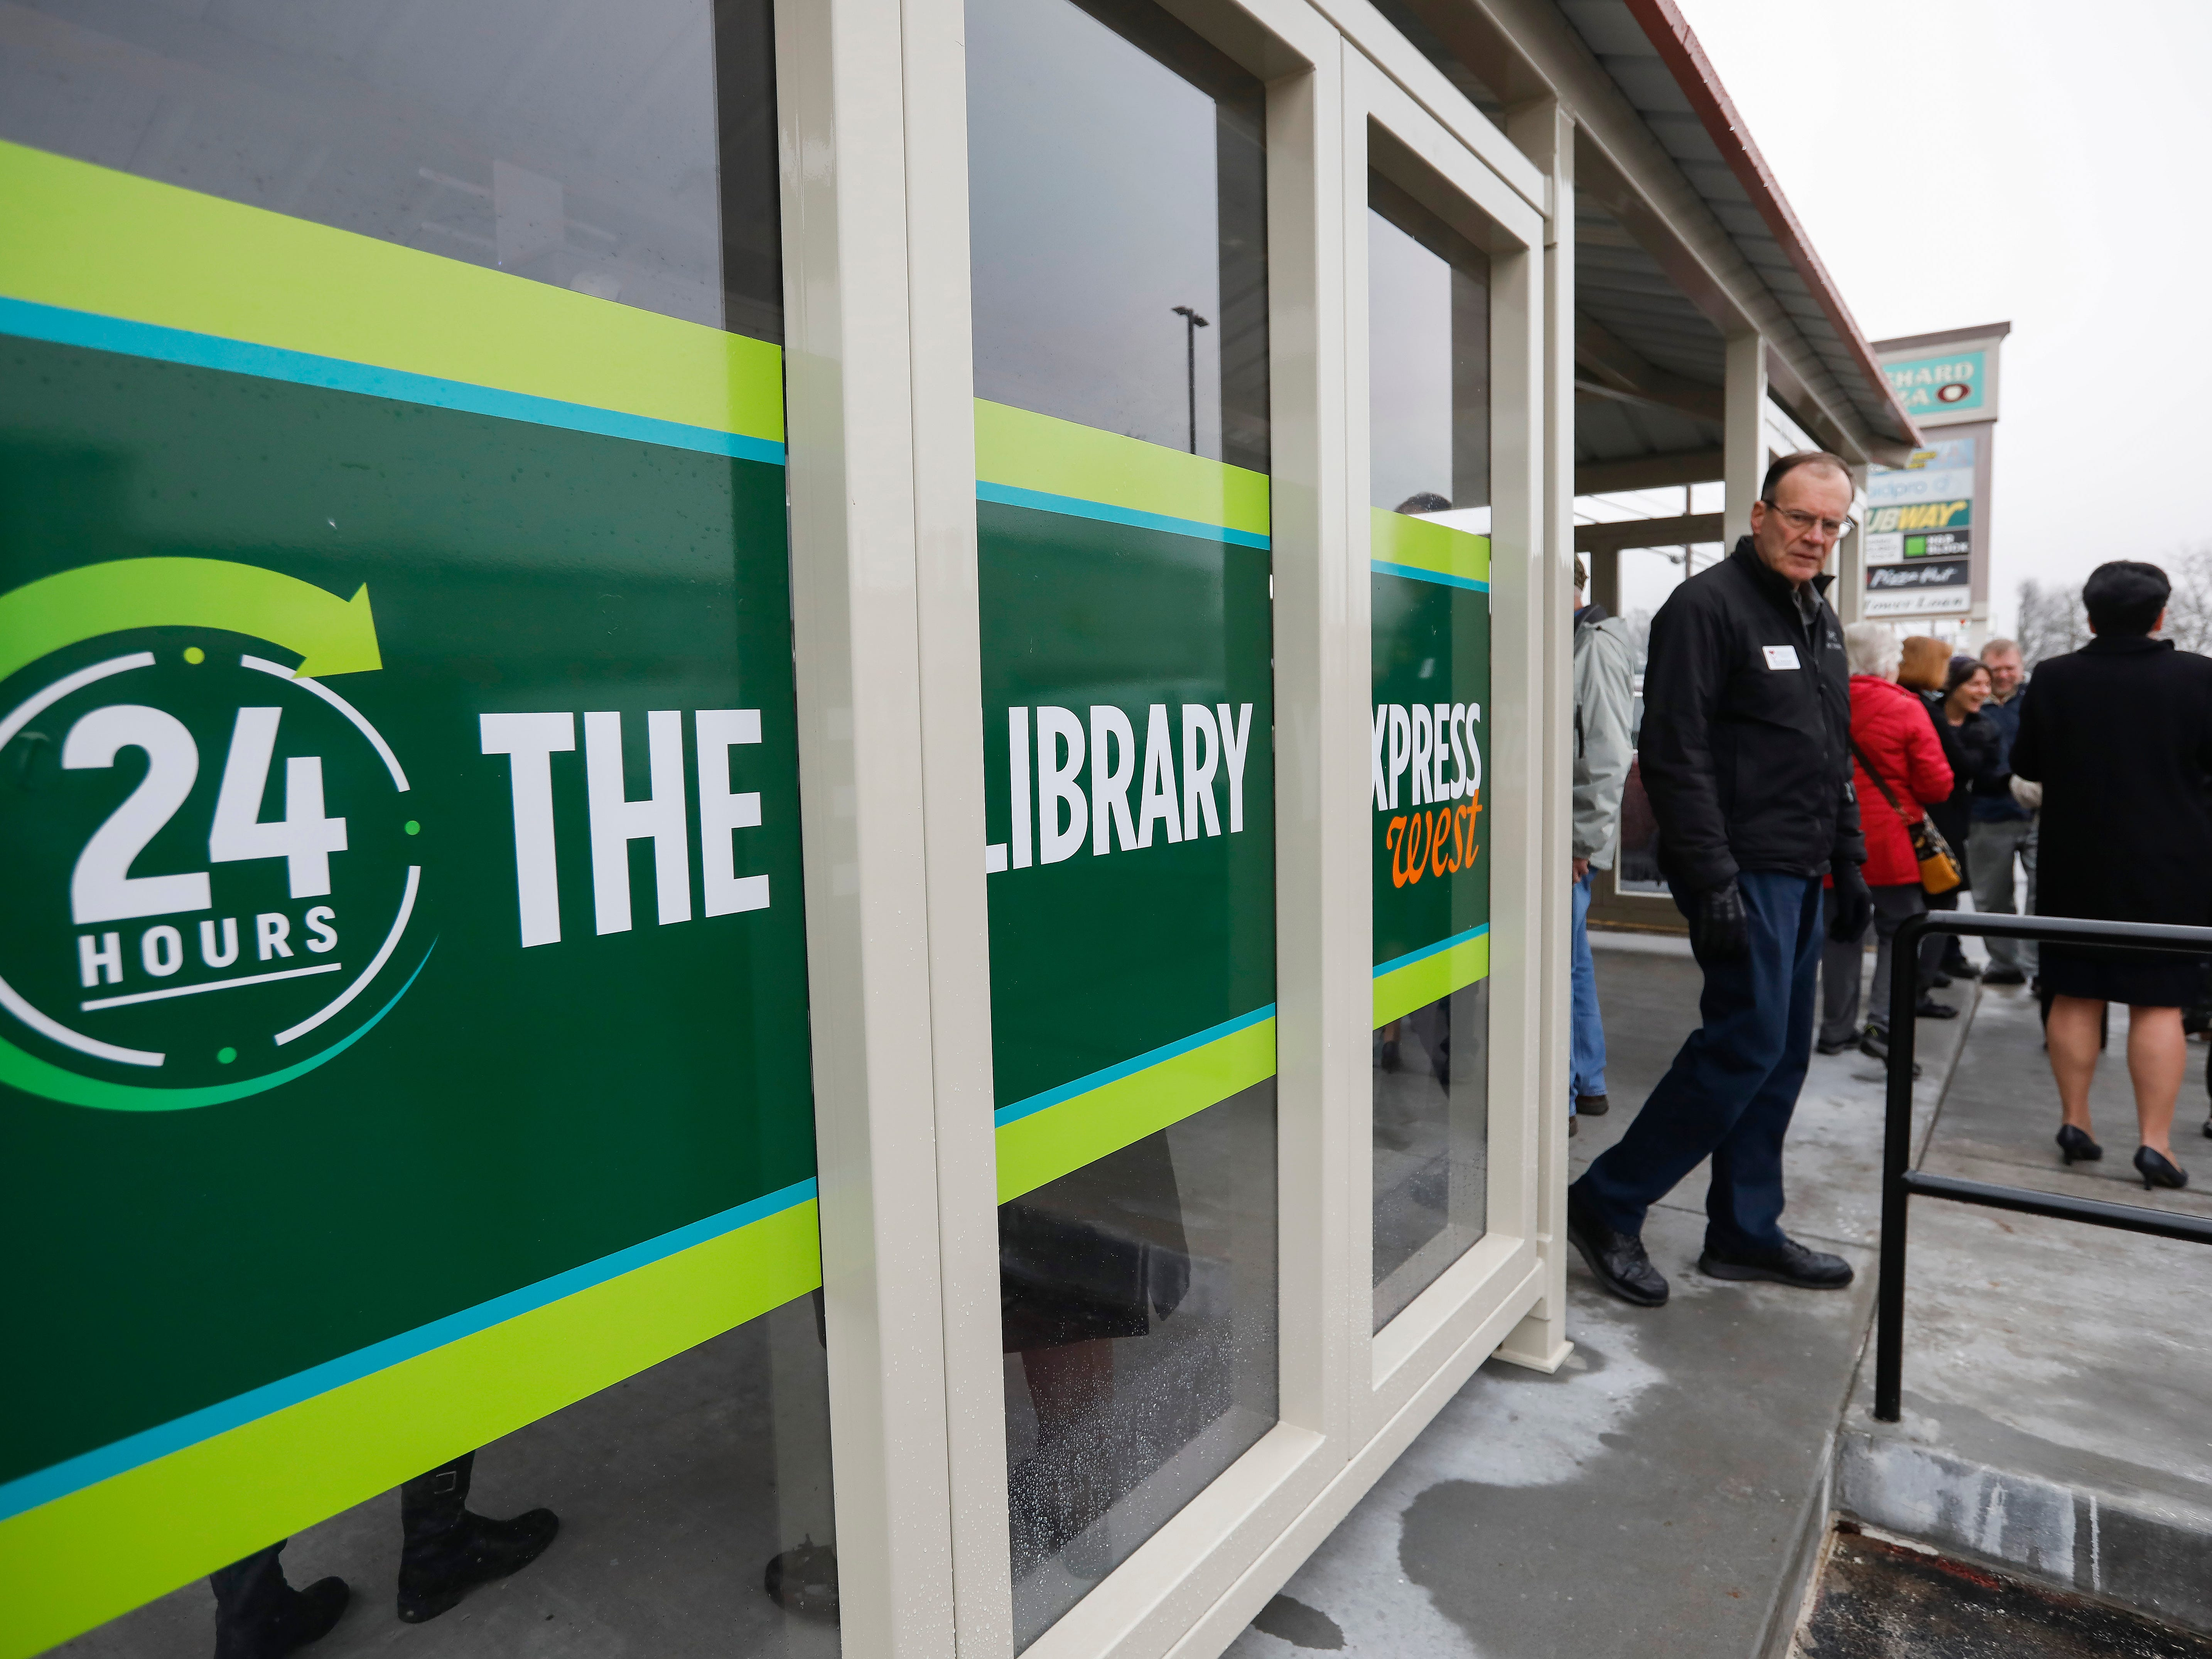 Scenes from the grand opening of the new Library Express West located at 3872 W. Chestnut Expressway in Orchard Plaza on Wednesday, Feb. 6, 2019.